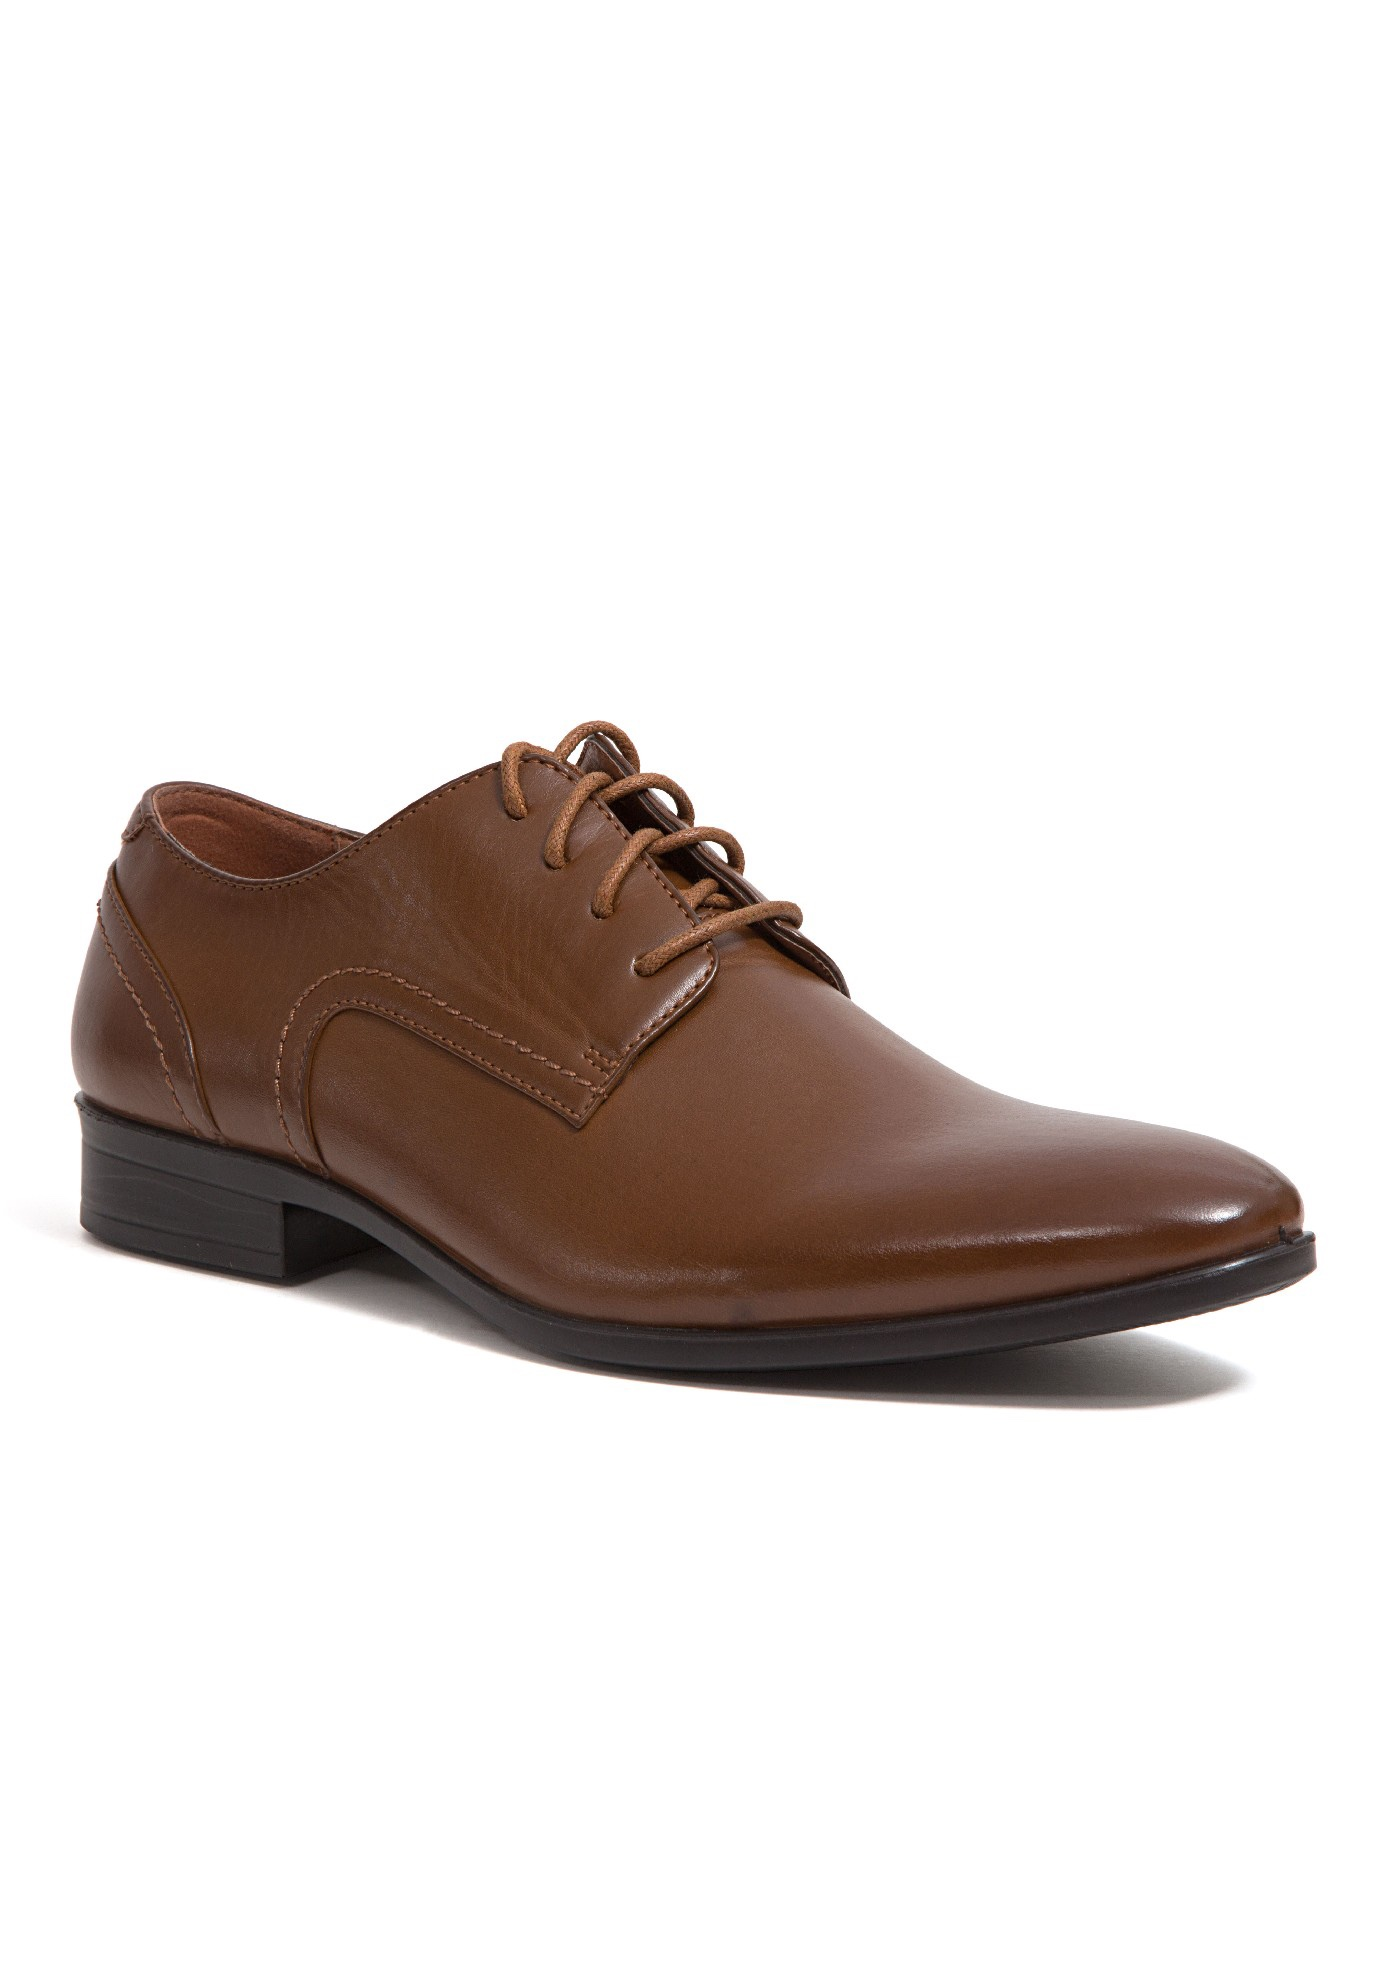 Deer Stags® Shipley Comfort Oxford Shoes,